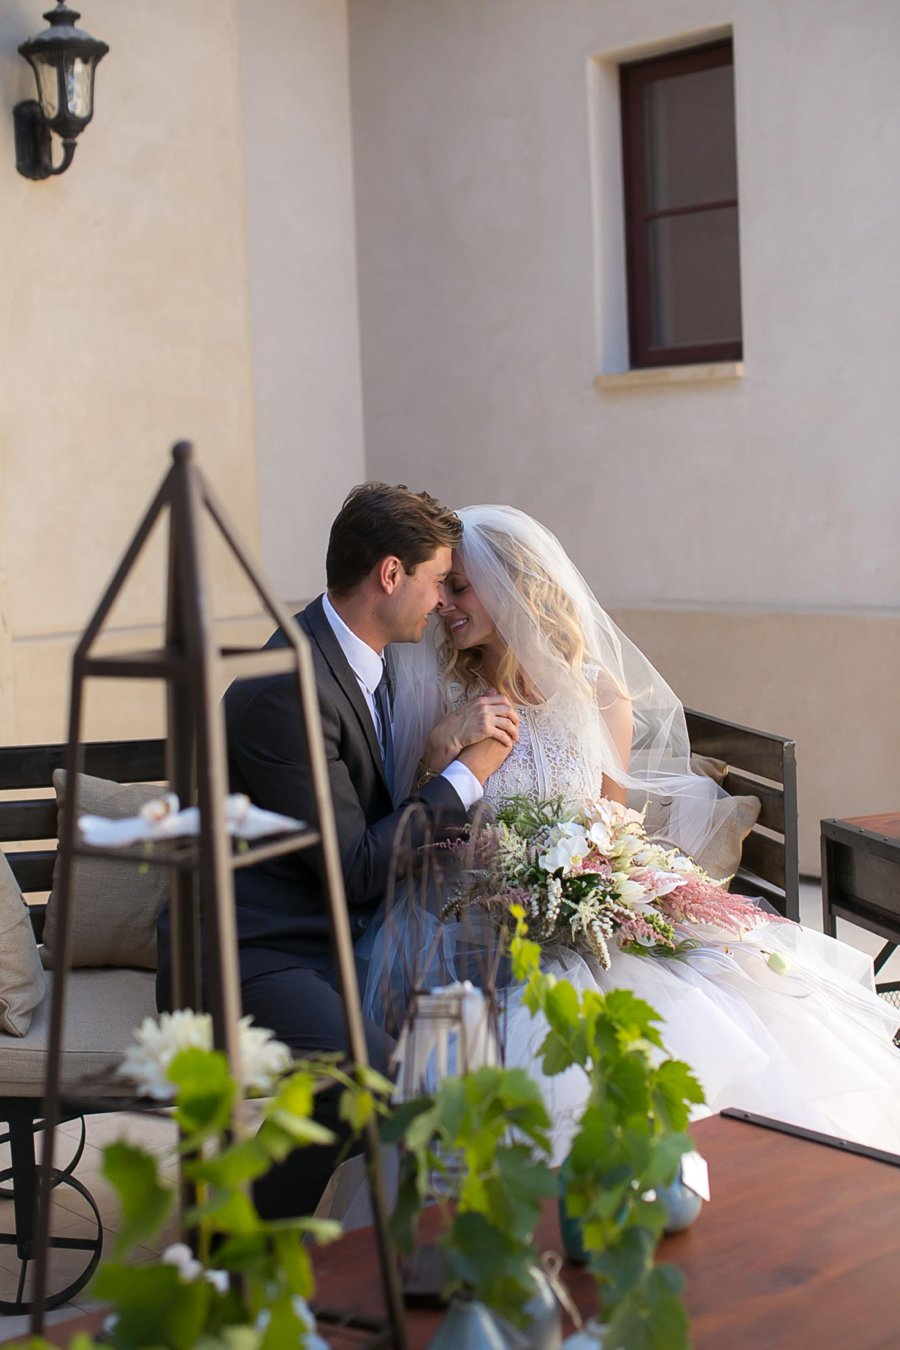 STOLPMANN VILLA AND VINEYARDS | LOS OLIVOS WEDDING PHOTOGRAPHER CHRIS HOLT PHOTOGRAPHY_019.jpg